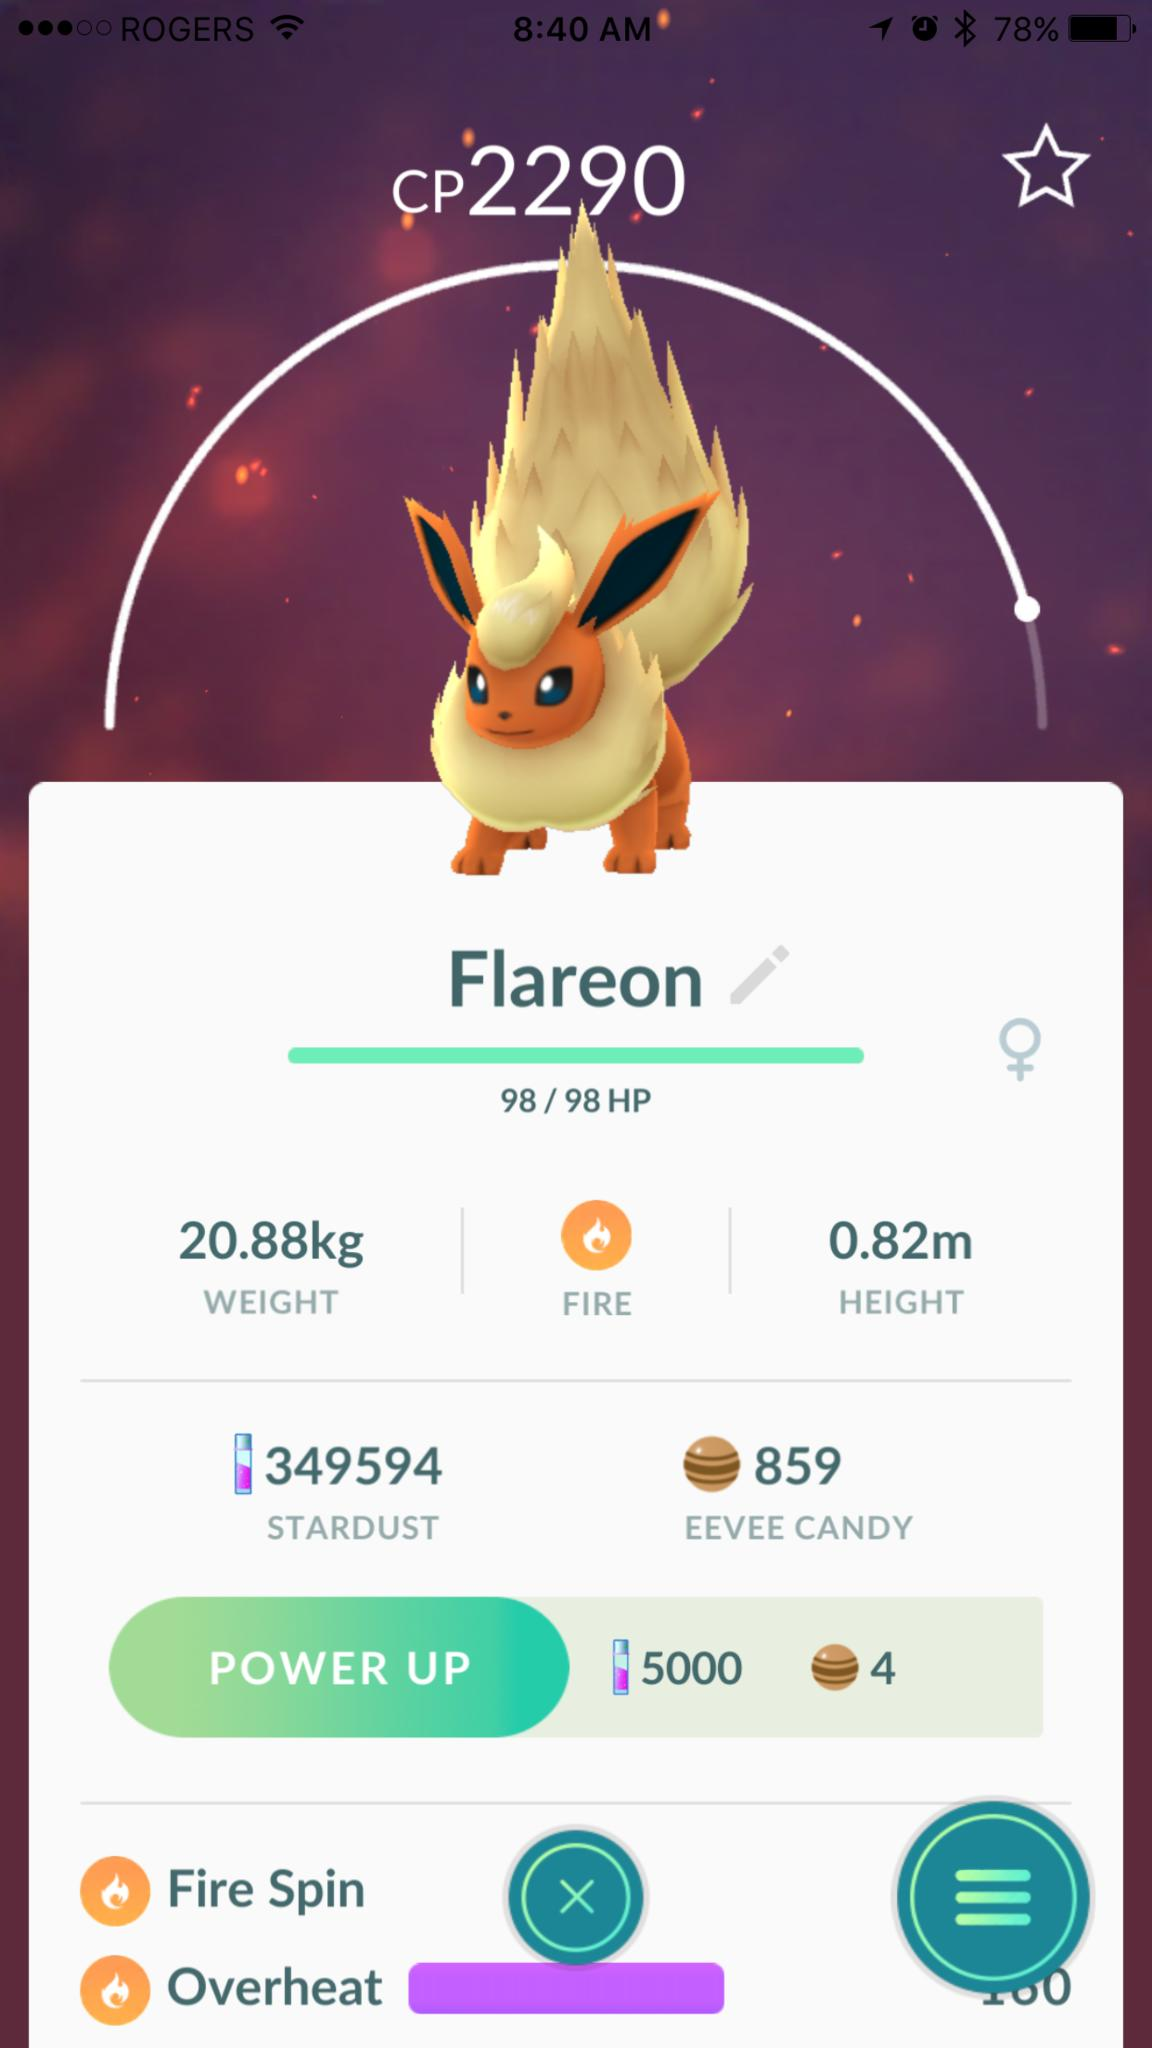 Flareon was all but forgotten thanks to the big fire type depowering nerfing of late with advent blissey though   powerful overheat also pokemon go how control eevee evolution for umbreon espeon rh imore